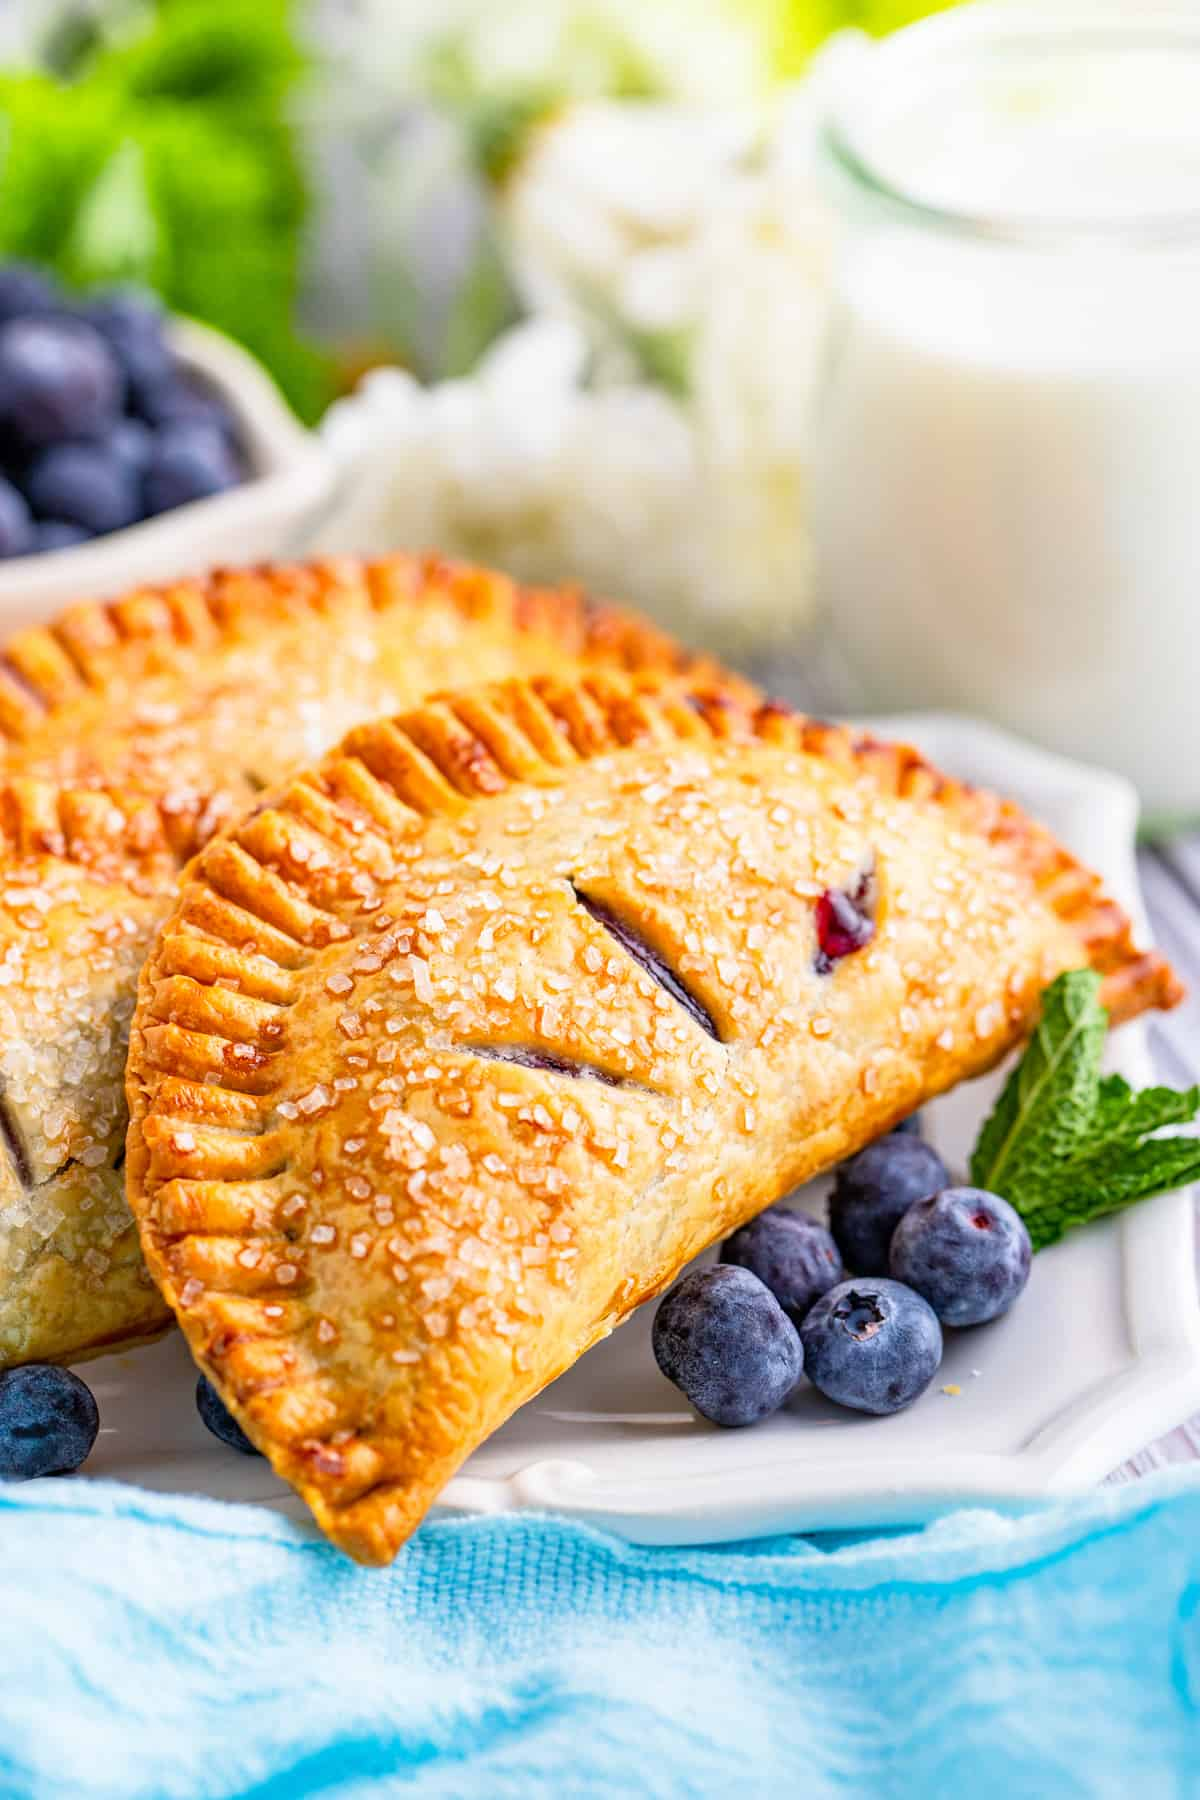 Close up side view of one Blueberry Hand Pie on white platter with blueberries